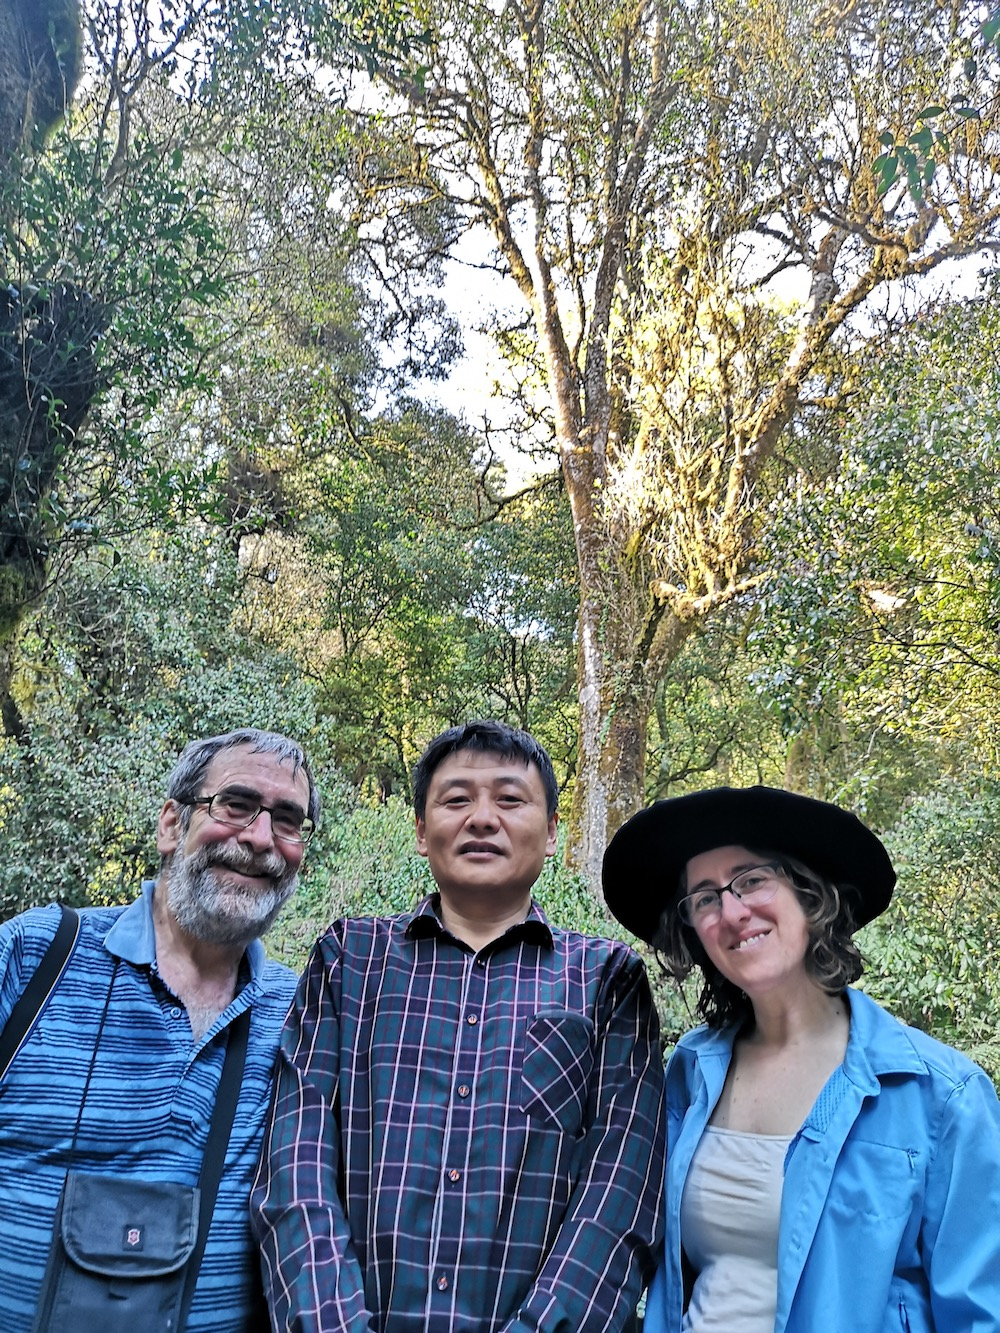 Jack Joseph, Professor Hou, and I at the 2700 year old tea tree